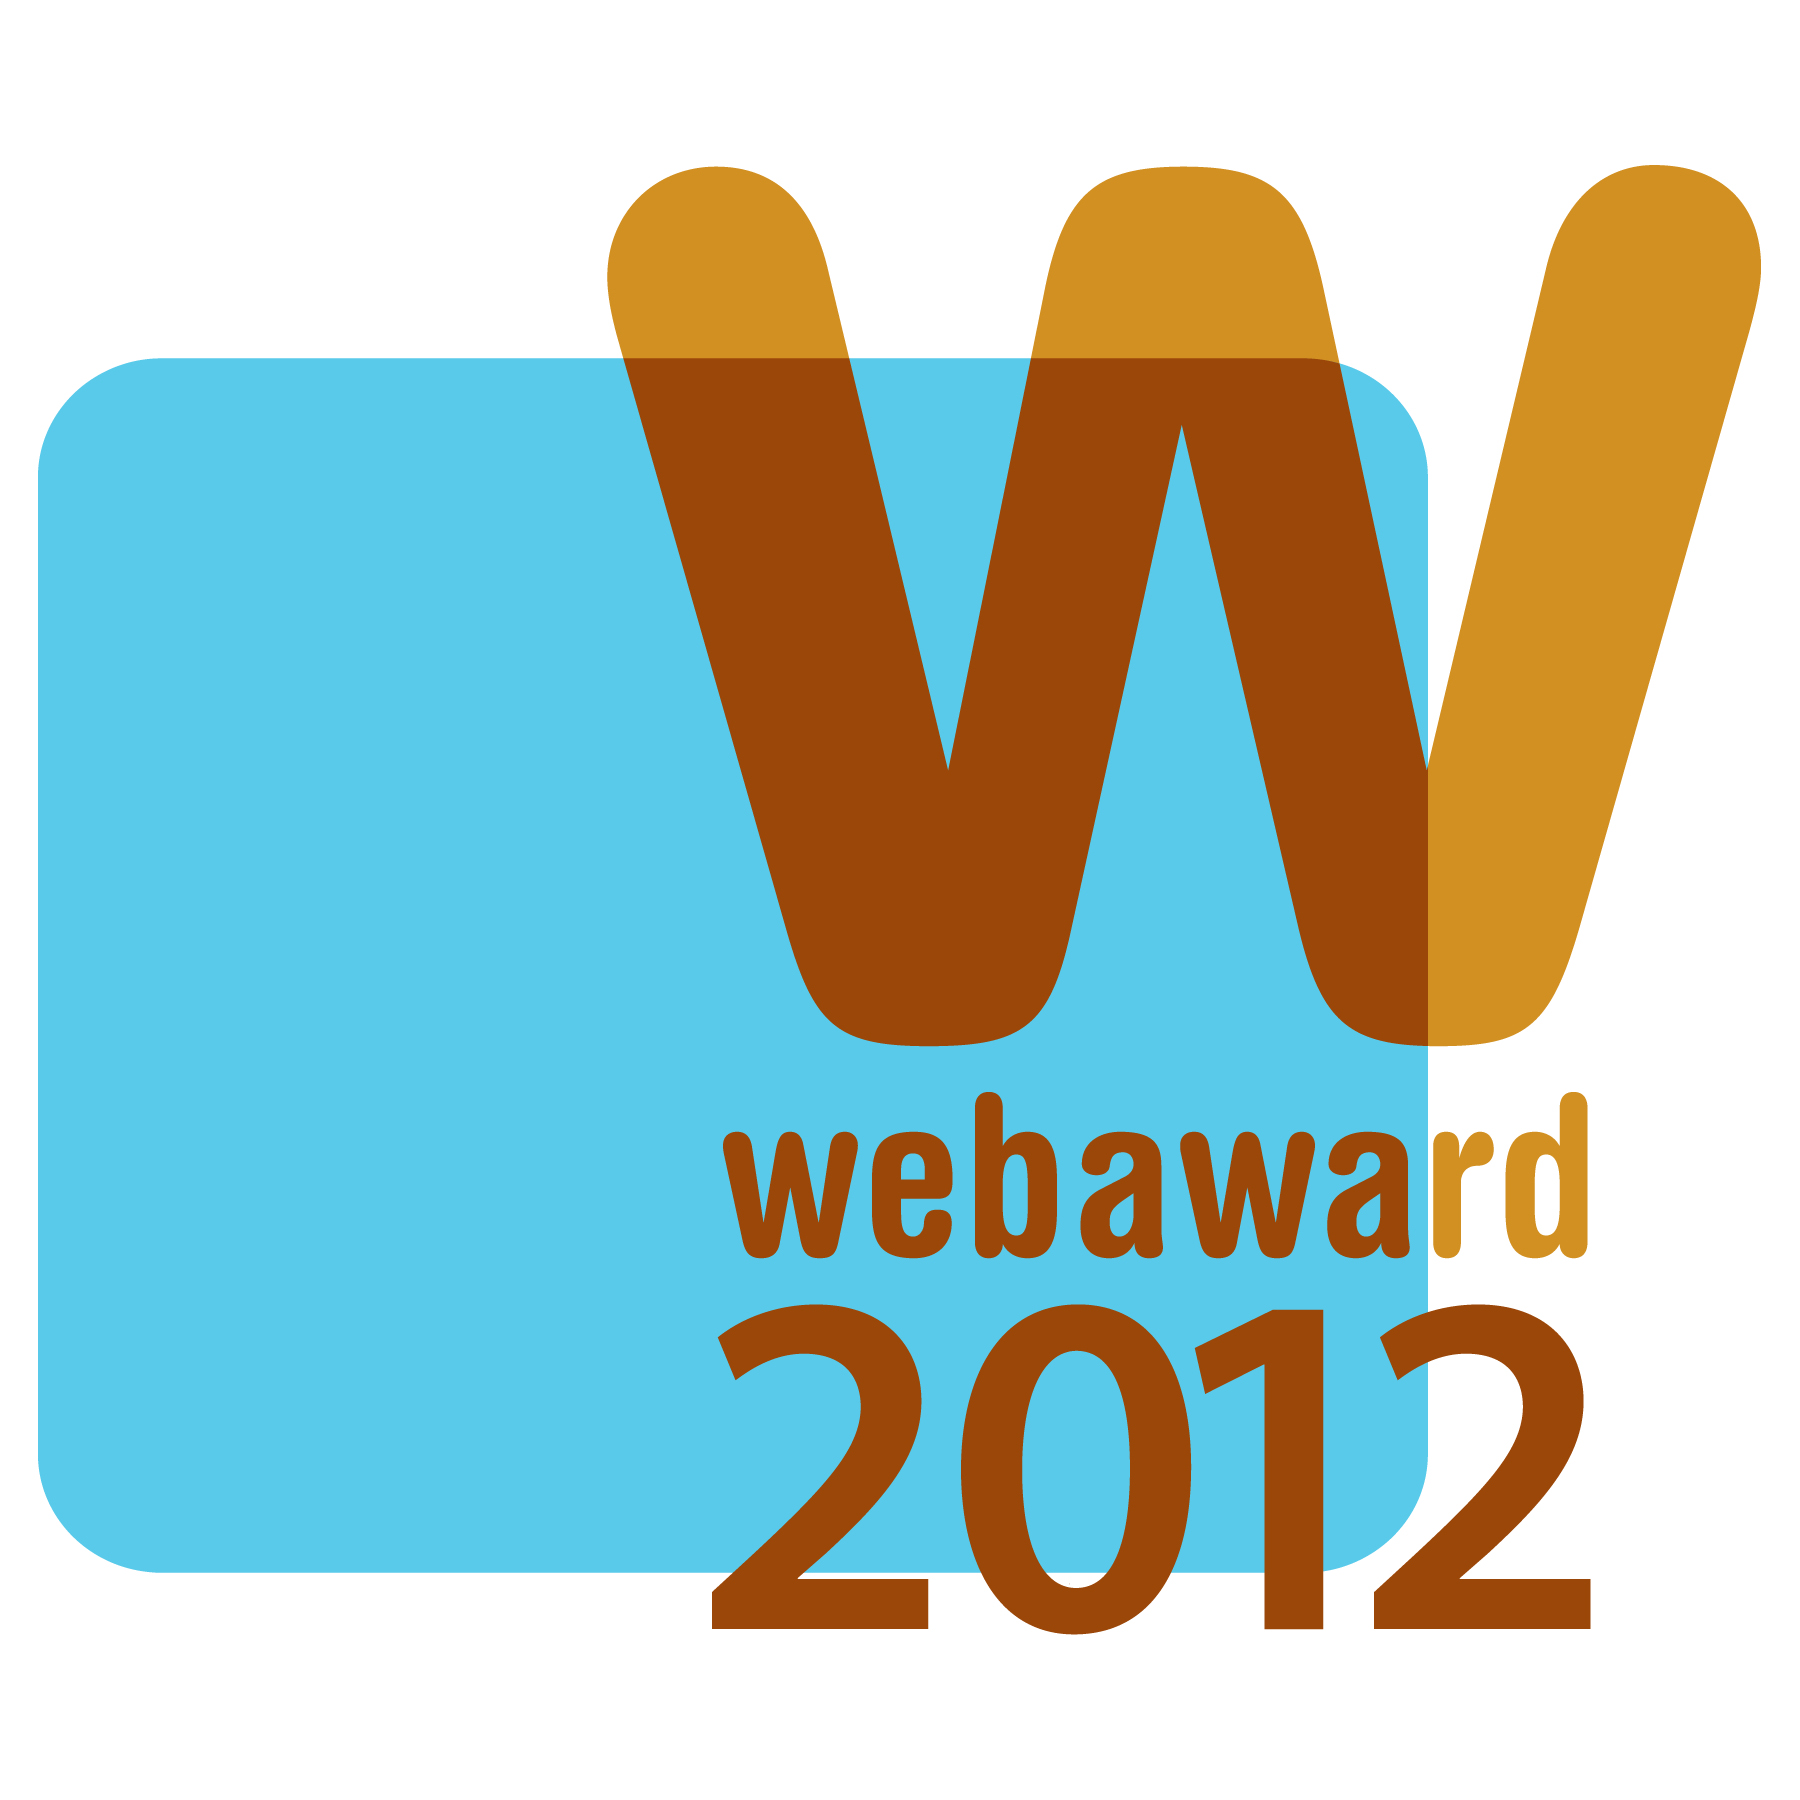 2012 WebAward Logo